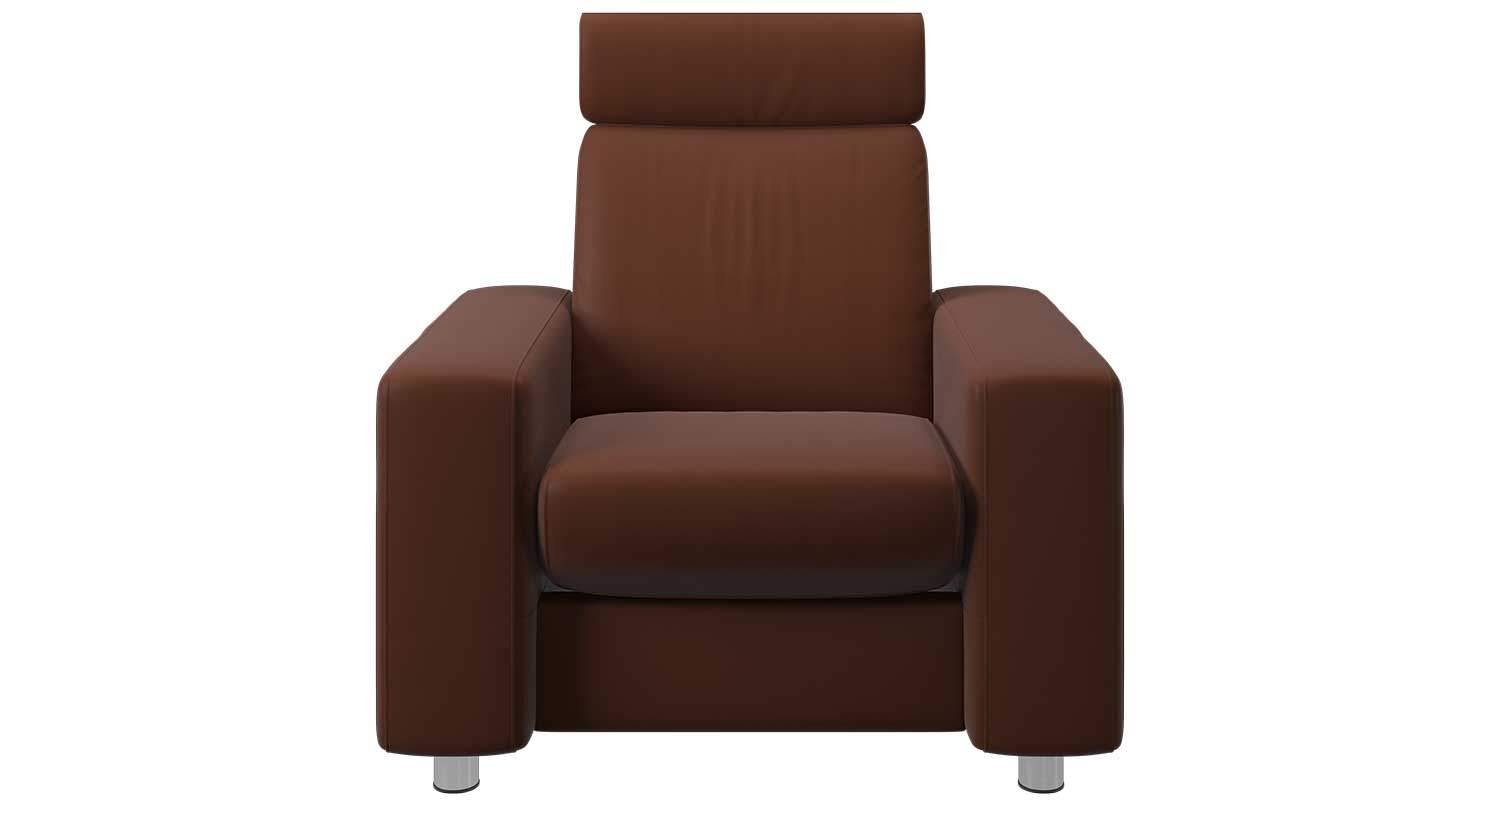 Pause Stressless Highback Chair